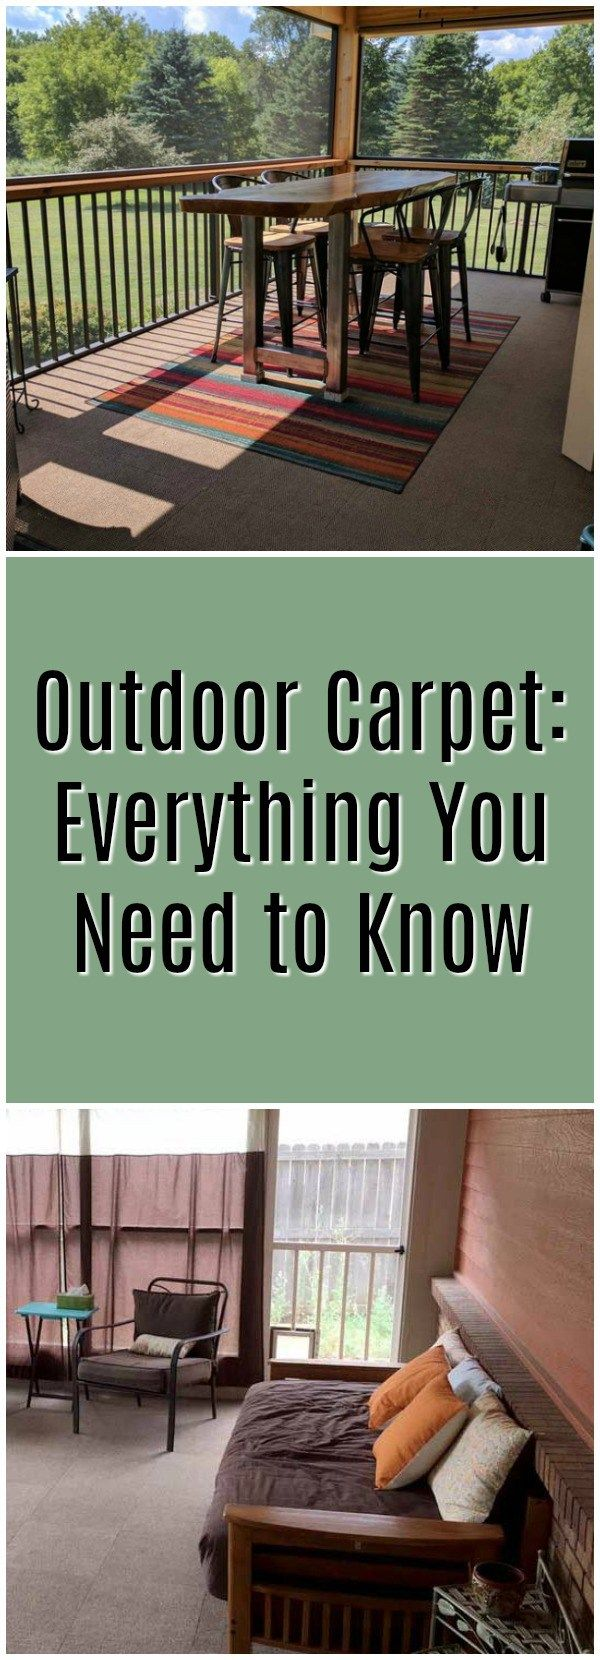 Outdoor Carpet: Everything You Need to Know